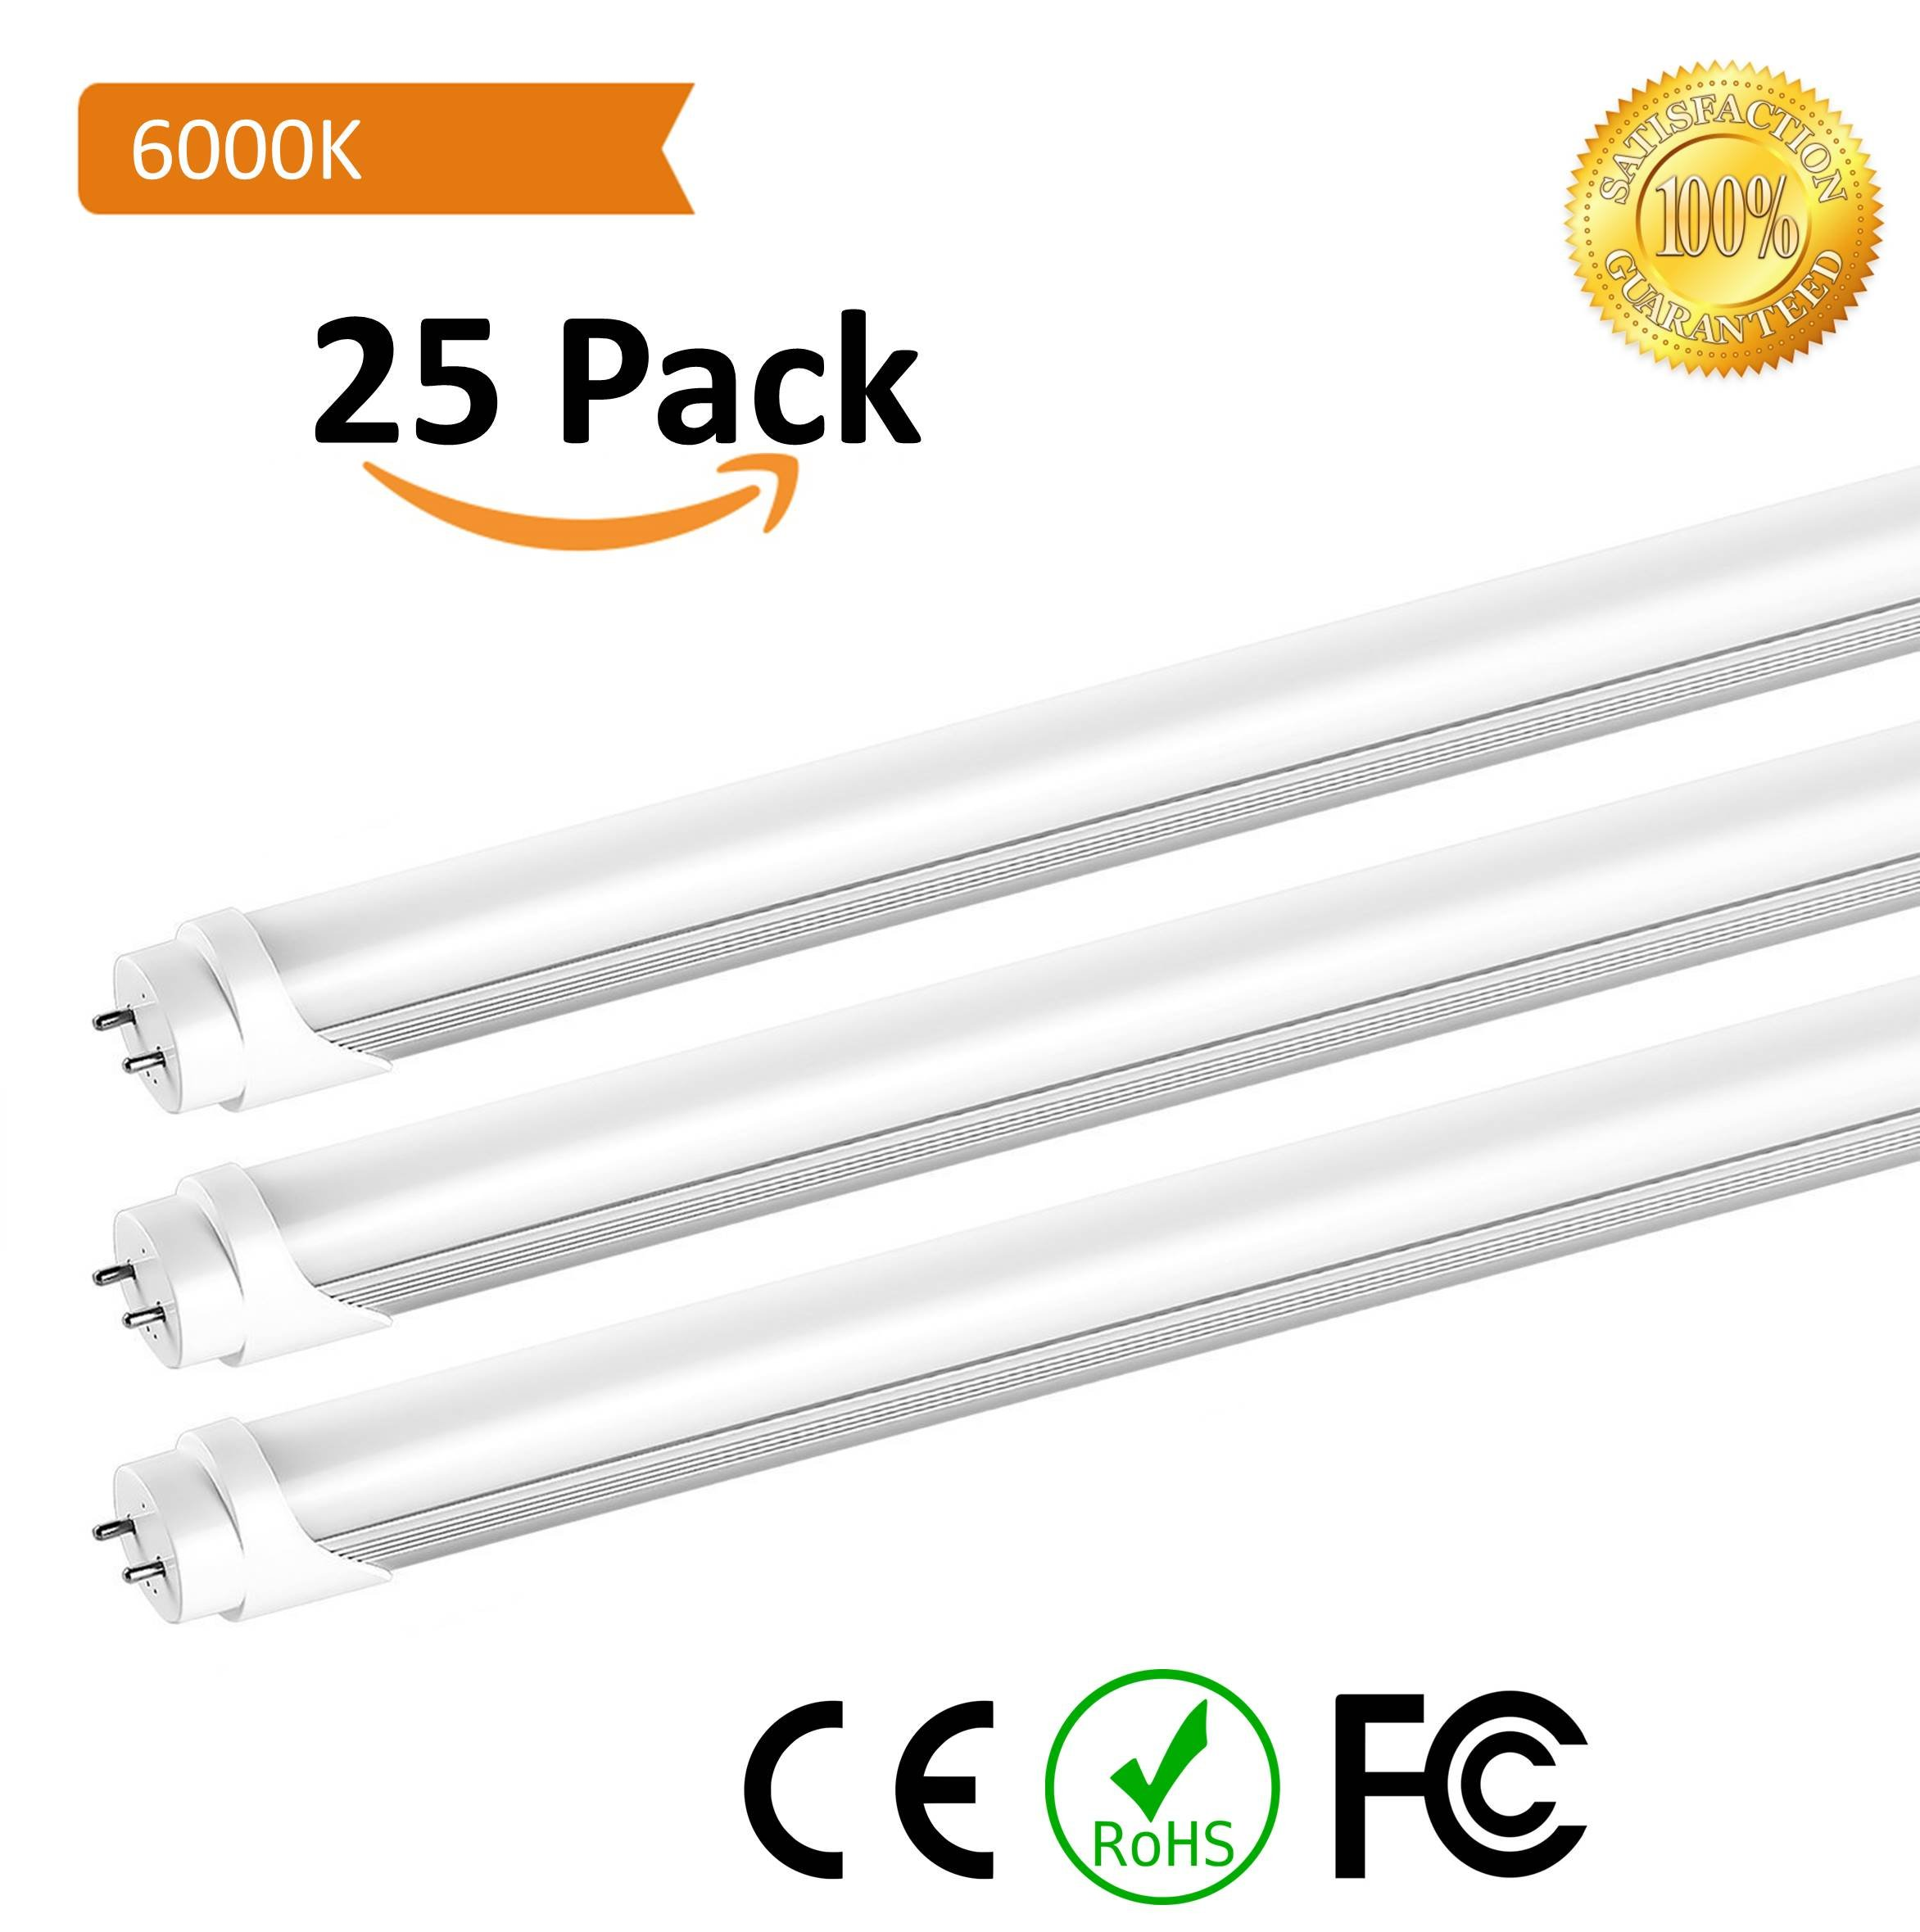 T8 LED Replacement, HouLight 25-Pack, 18W 4-foot T8 LED Light Tube, 6000K, White, Double End Power (25-Pack, Frosted Cover)